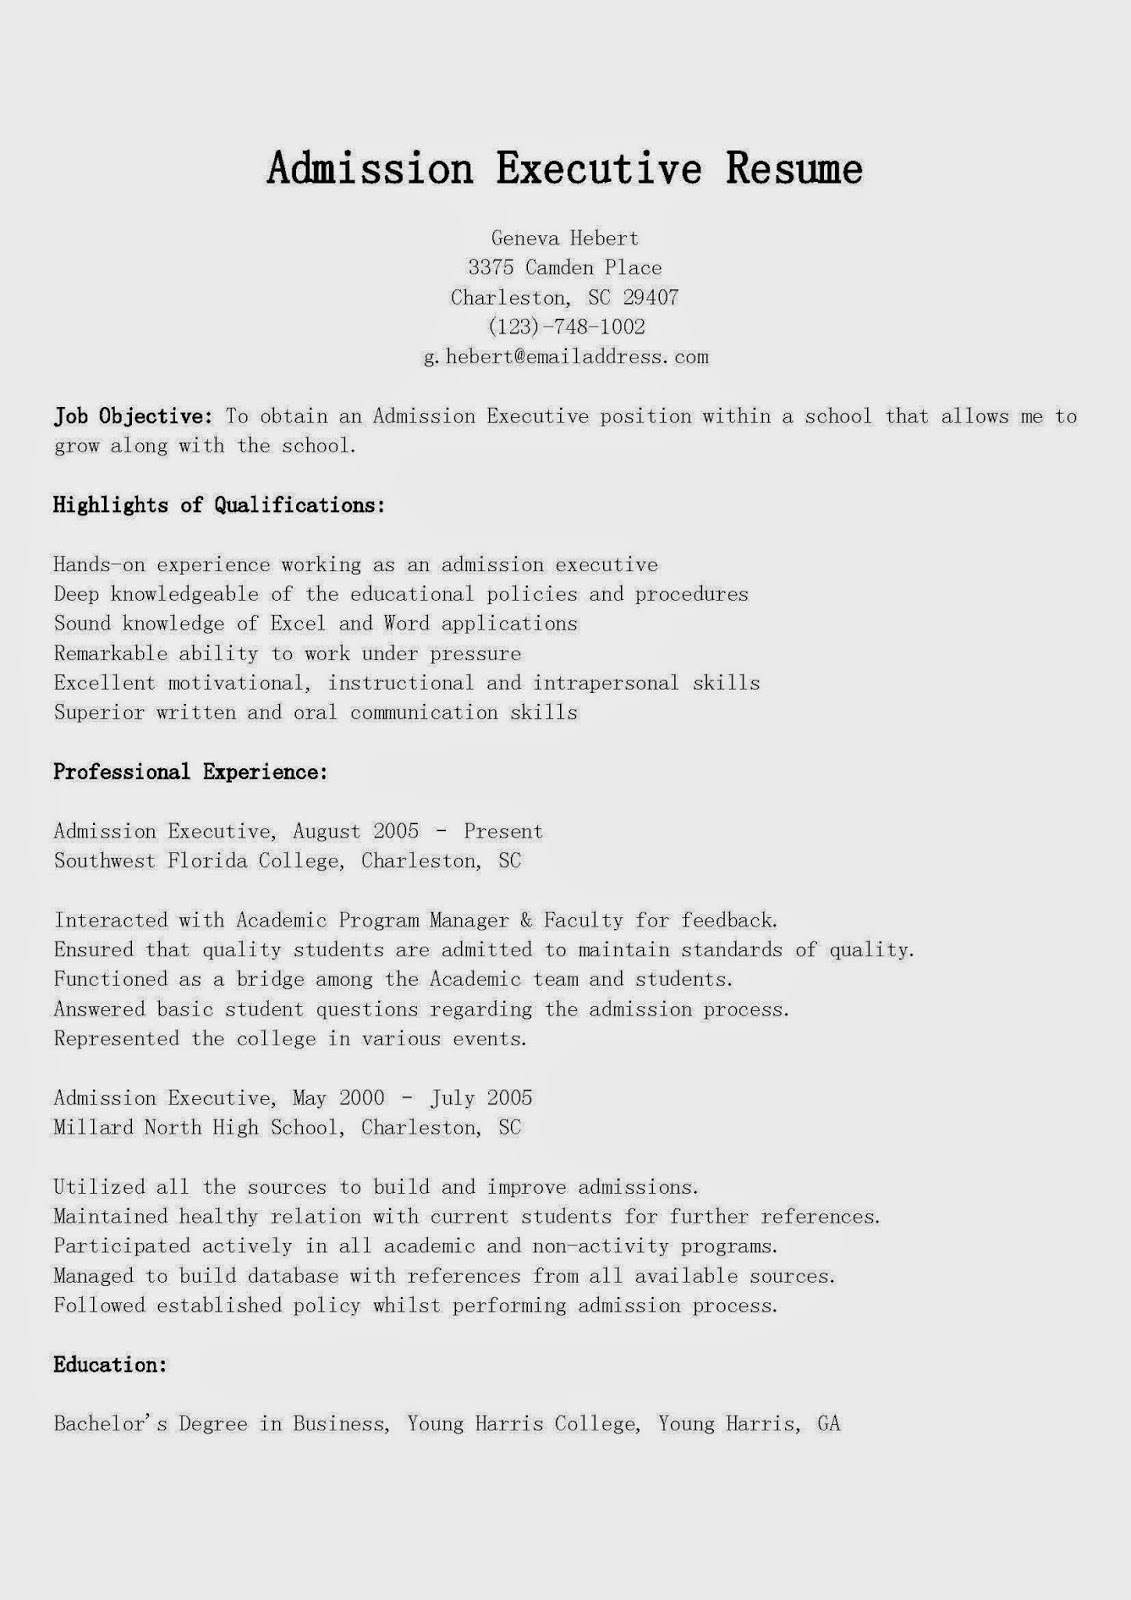 resume samples admission executive resume sample